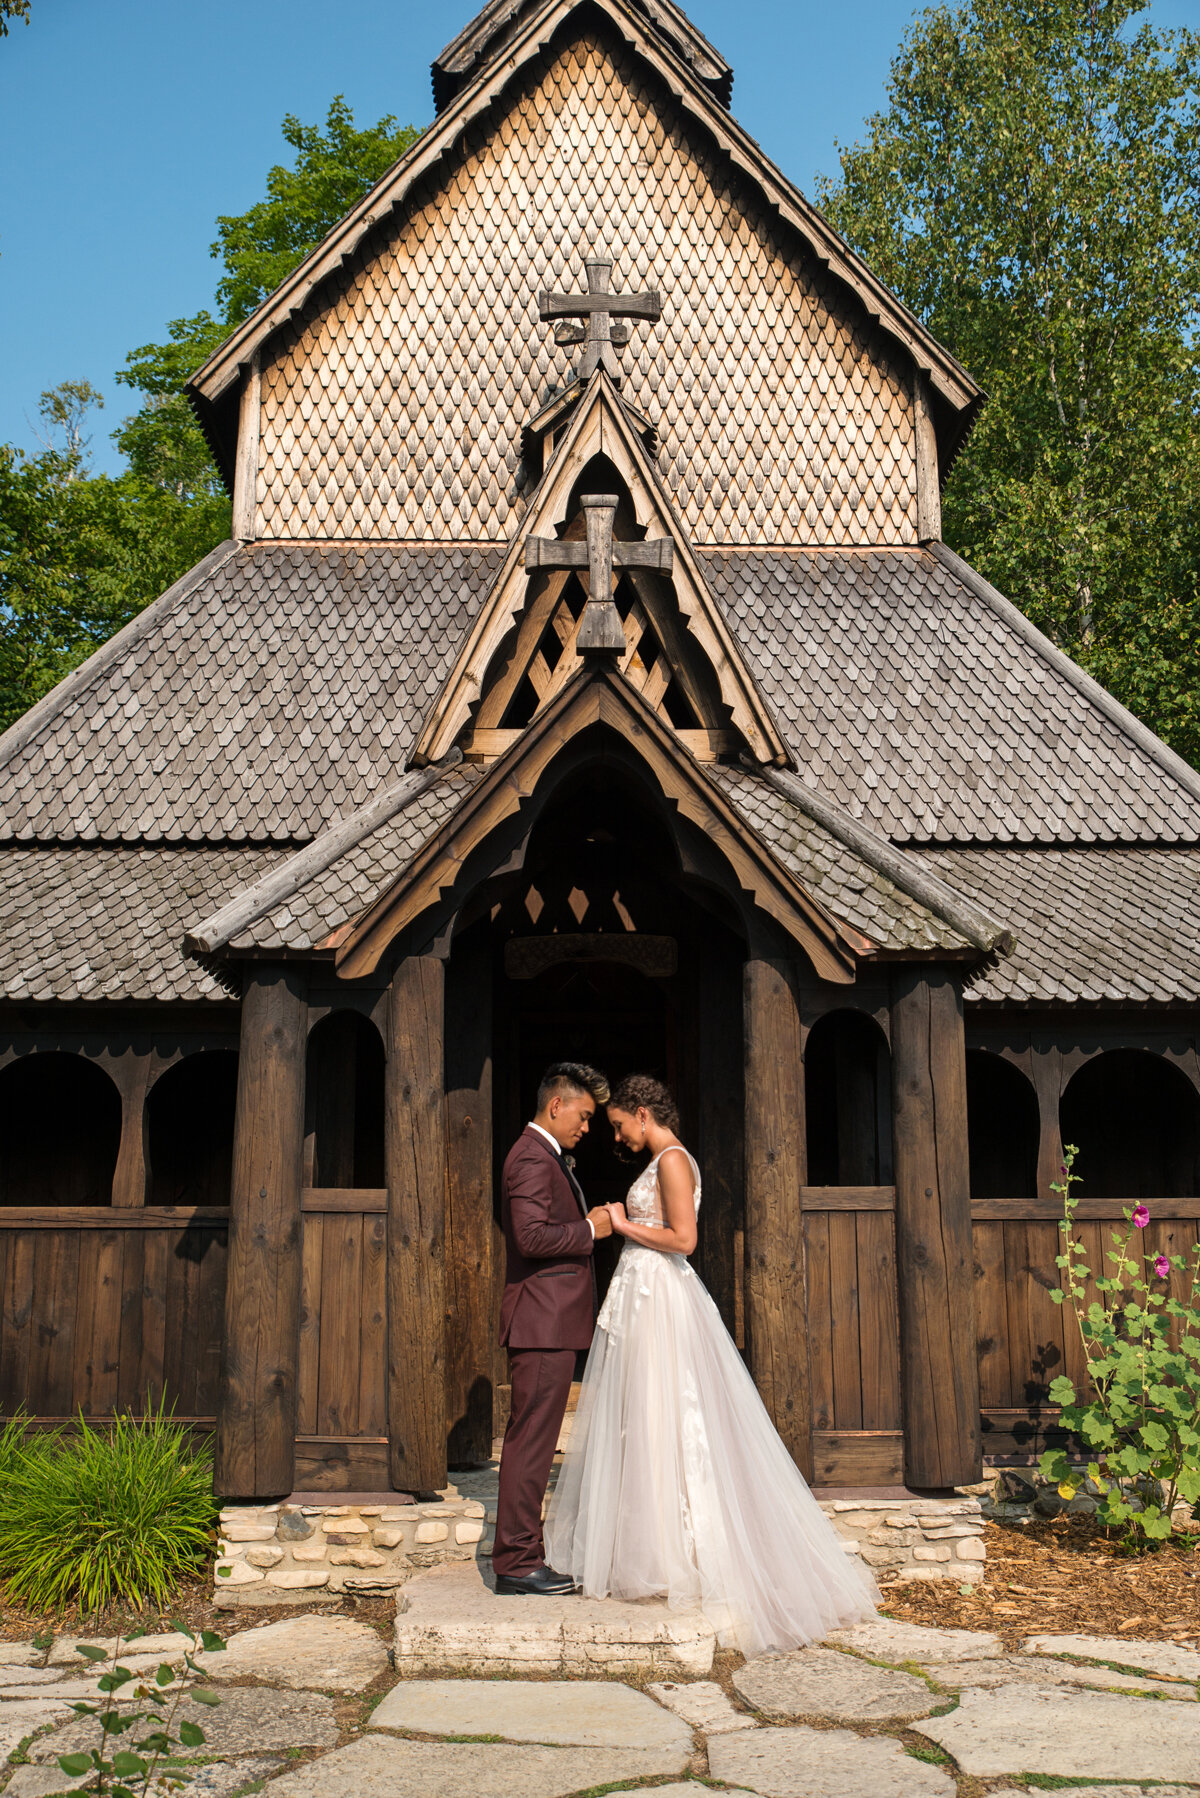 Styled shoot by  Kasey & Ben Photography  at Stavkirke Church.